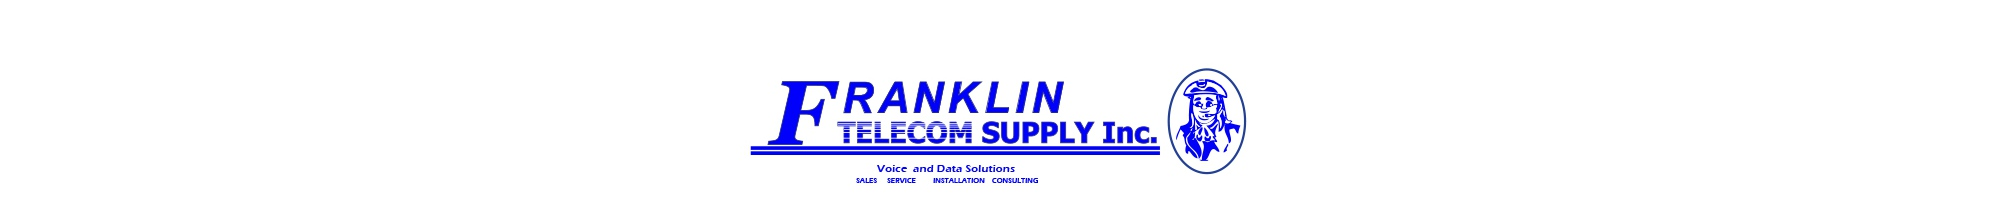 Franklin Telecom Supply Inc. Logo Image